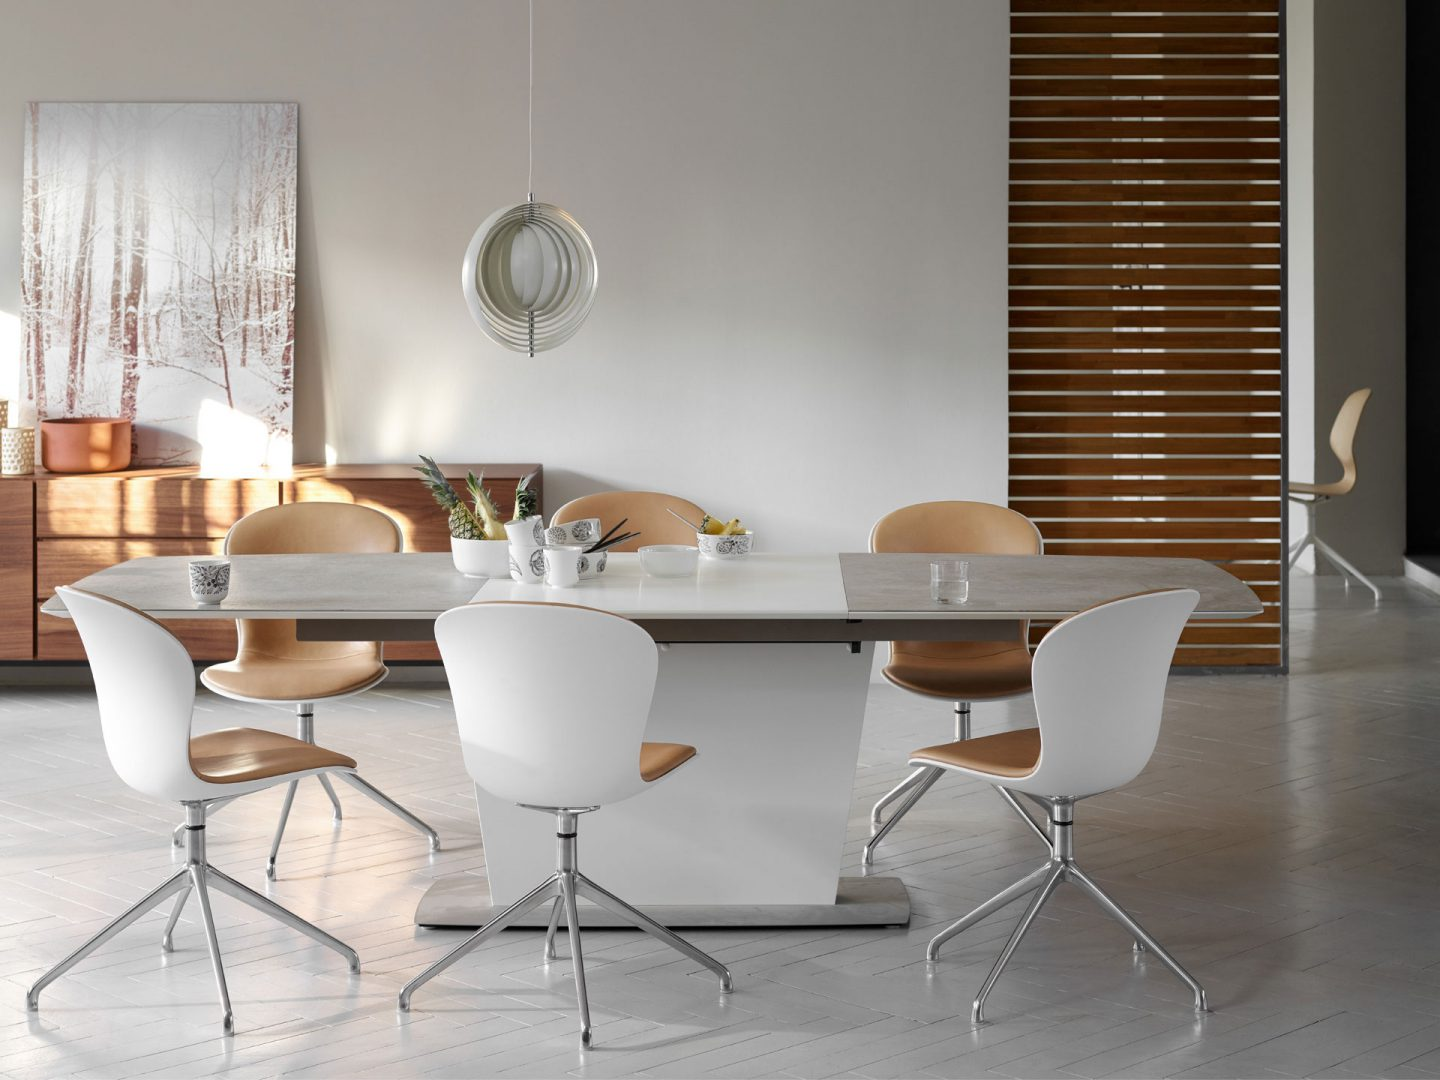 Milano dining table in ceramic top by BoConcept